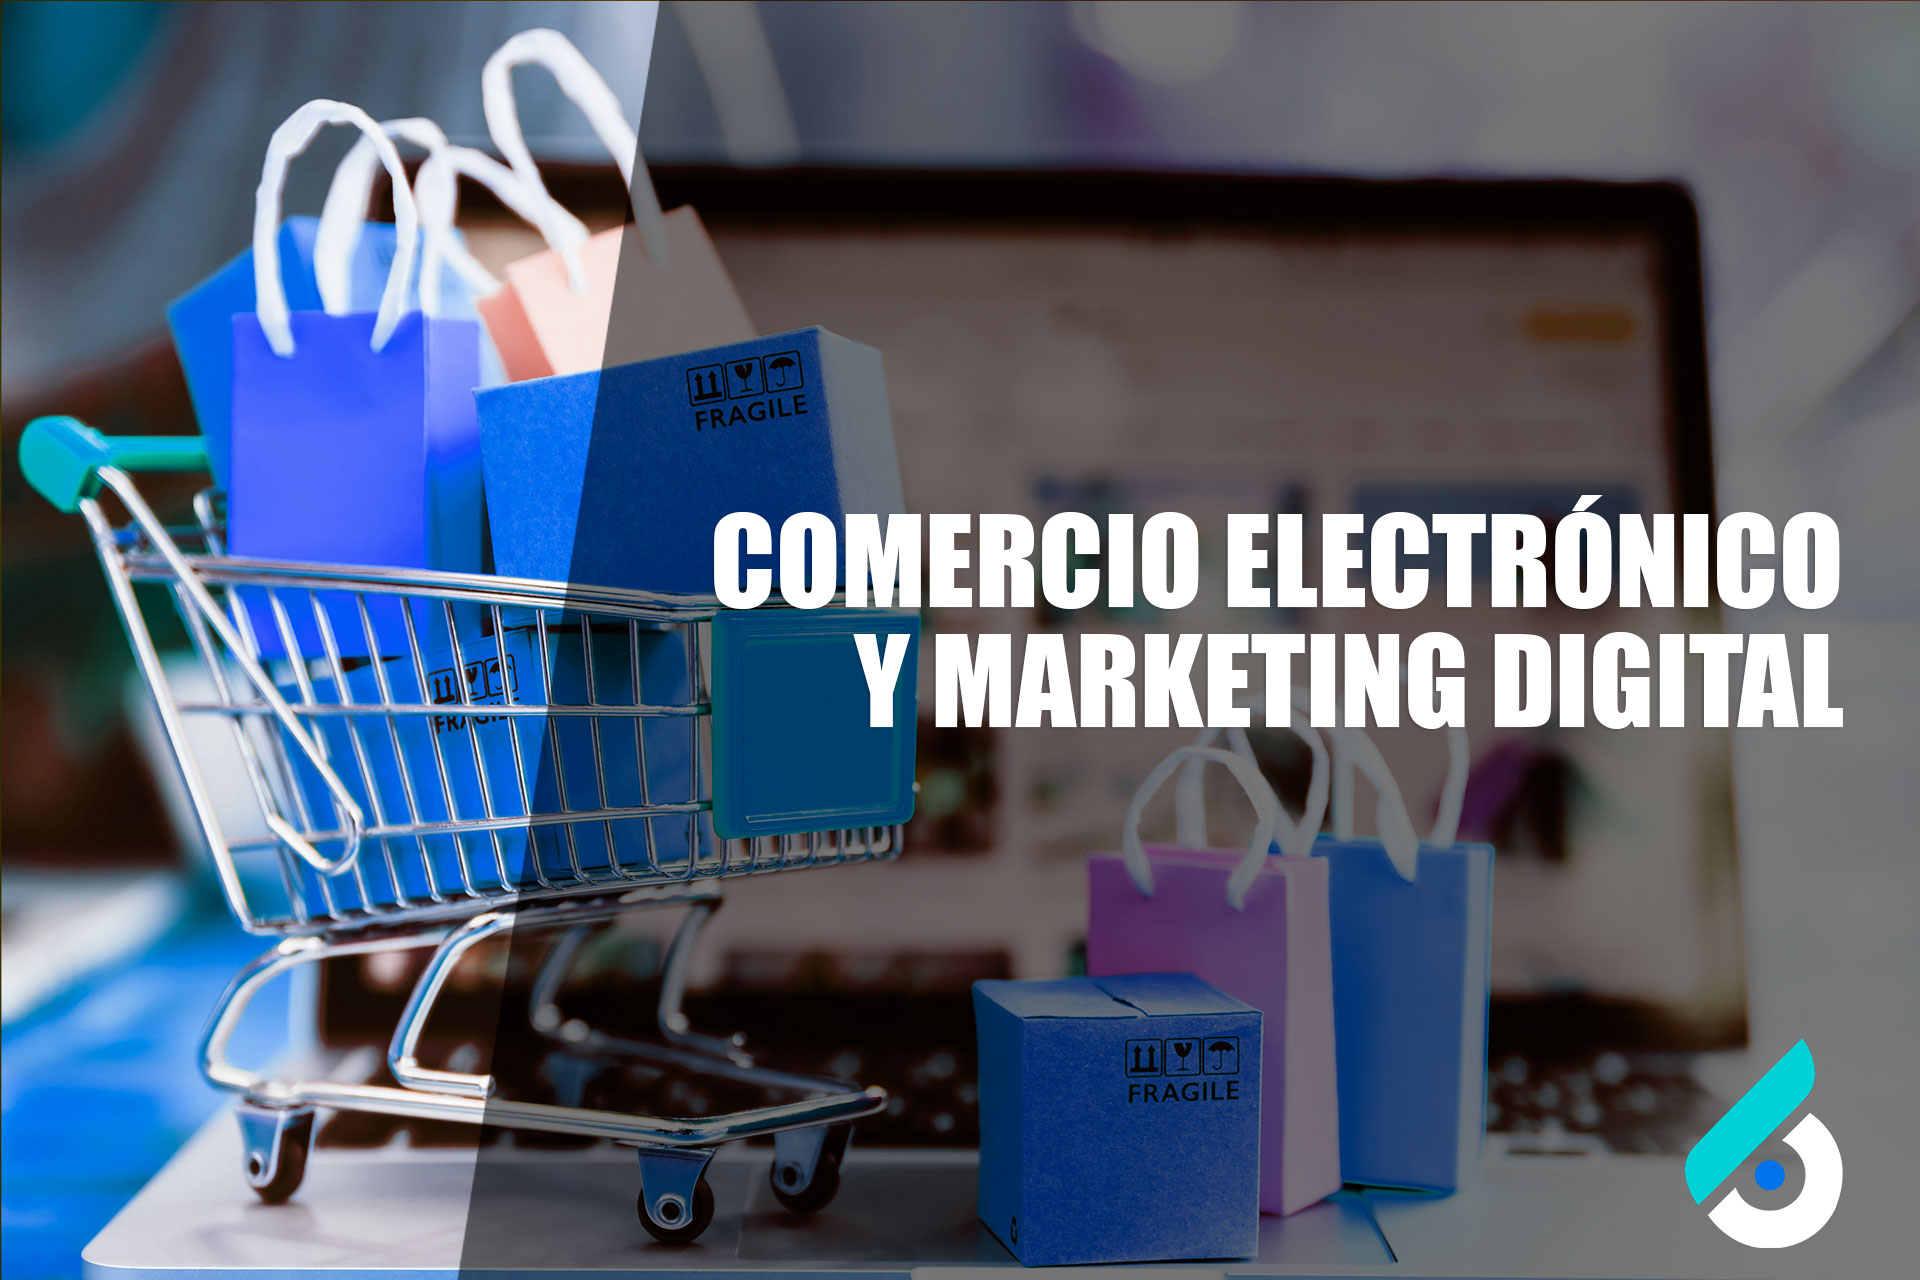 DMIPE-20-01-13-0435-1 | Comercio Electrónico y Marketing Digital